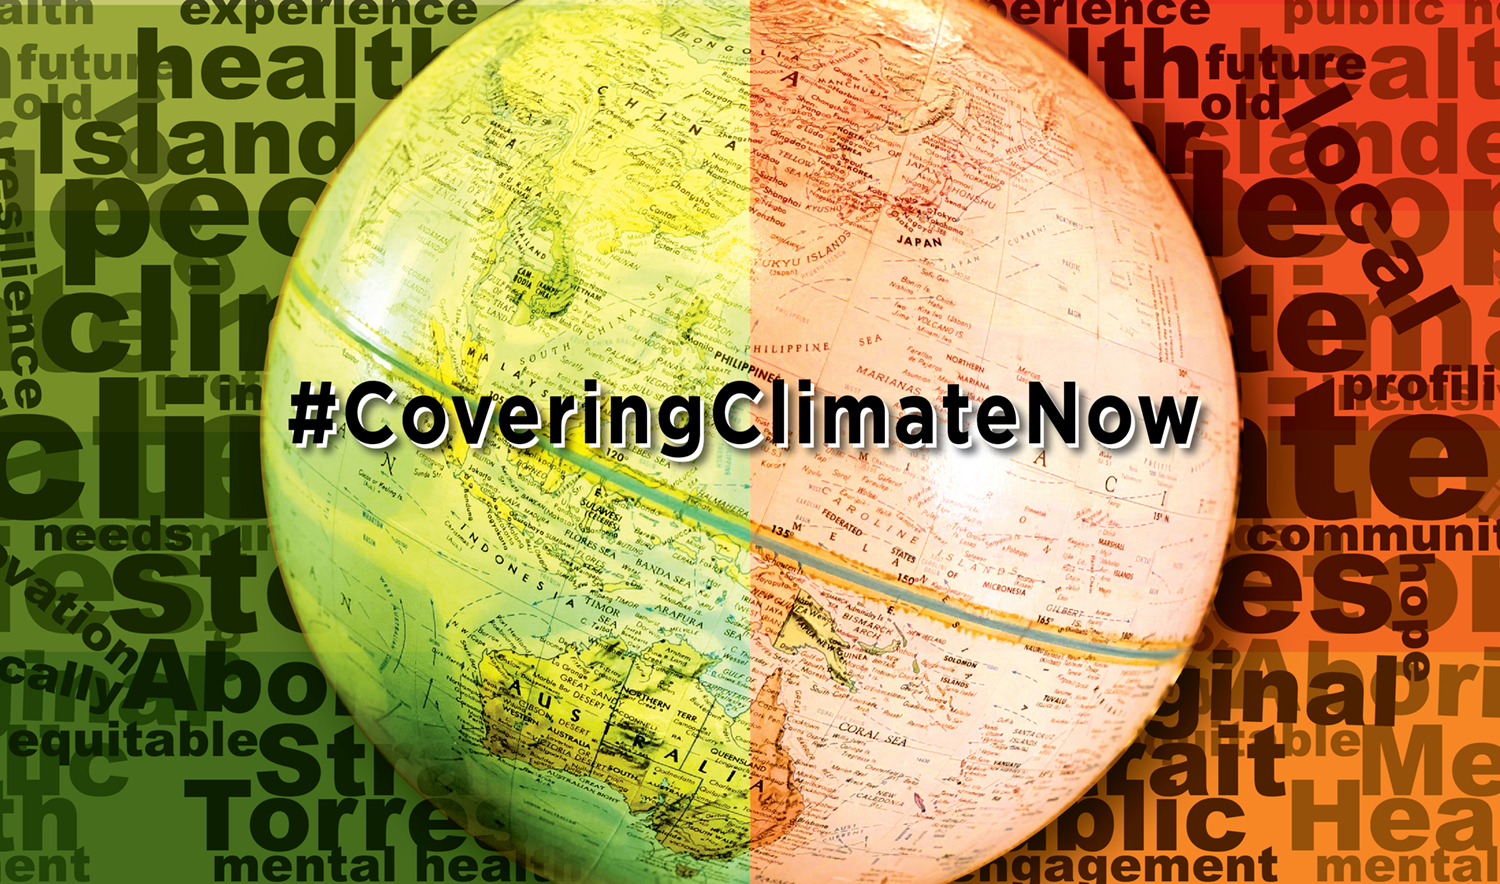 Join us in #CoveringClimateNow – an ambitious global media project